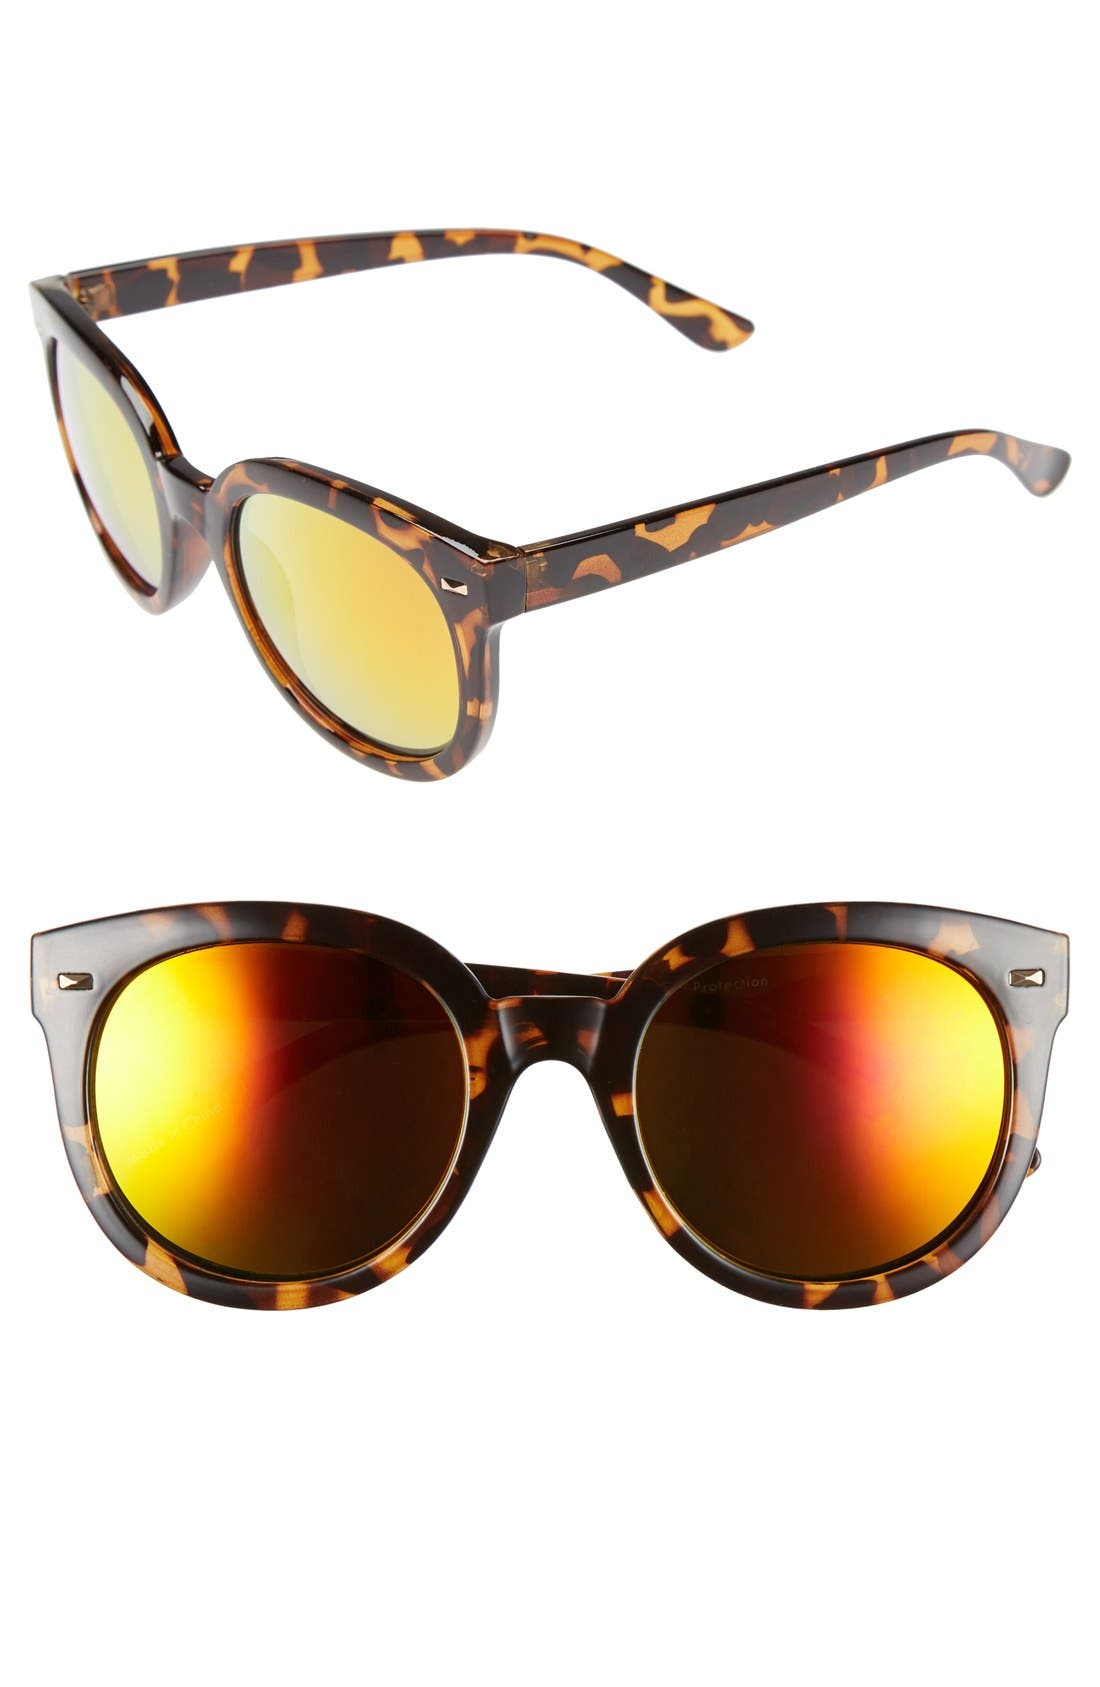 52mm Oversize Mirrored Sunglasses,                             Main thumbnail 2, color,